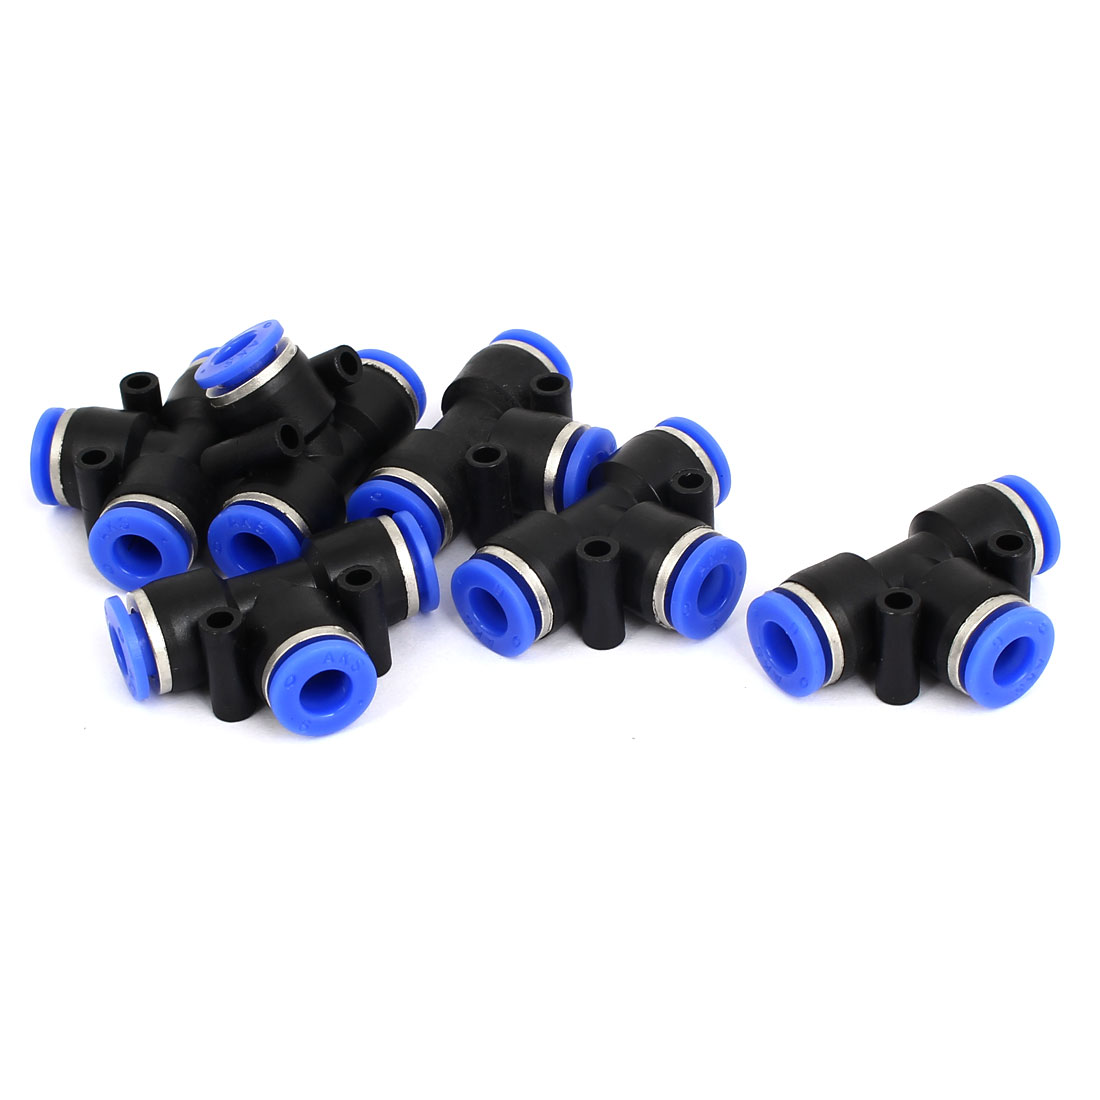 6pcs 6mm to 6mm T Shaped 3 Way Air Pneumatic Quick Fitting Coupler Black Blue